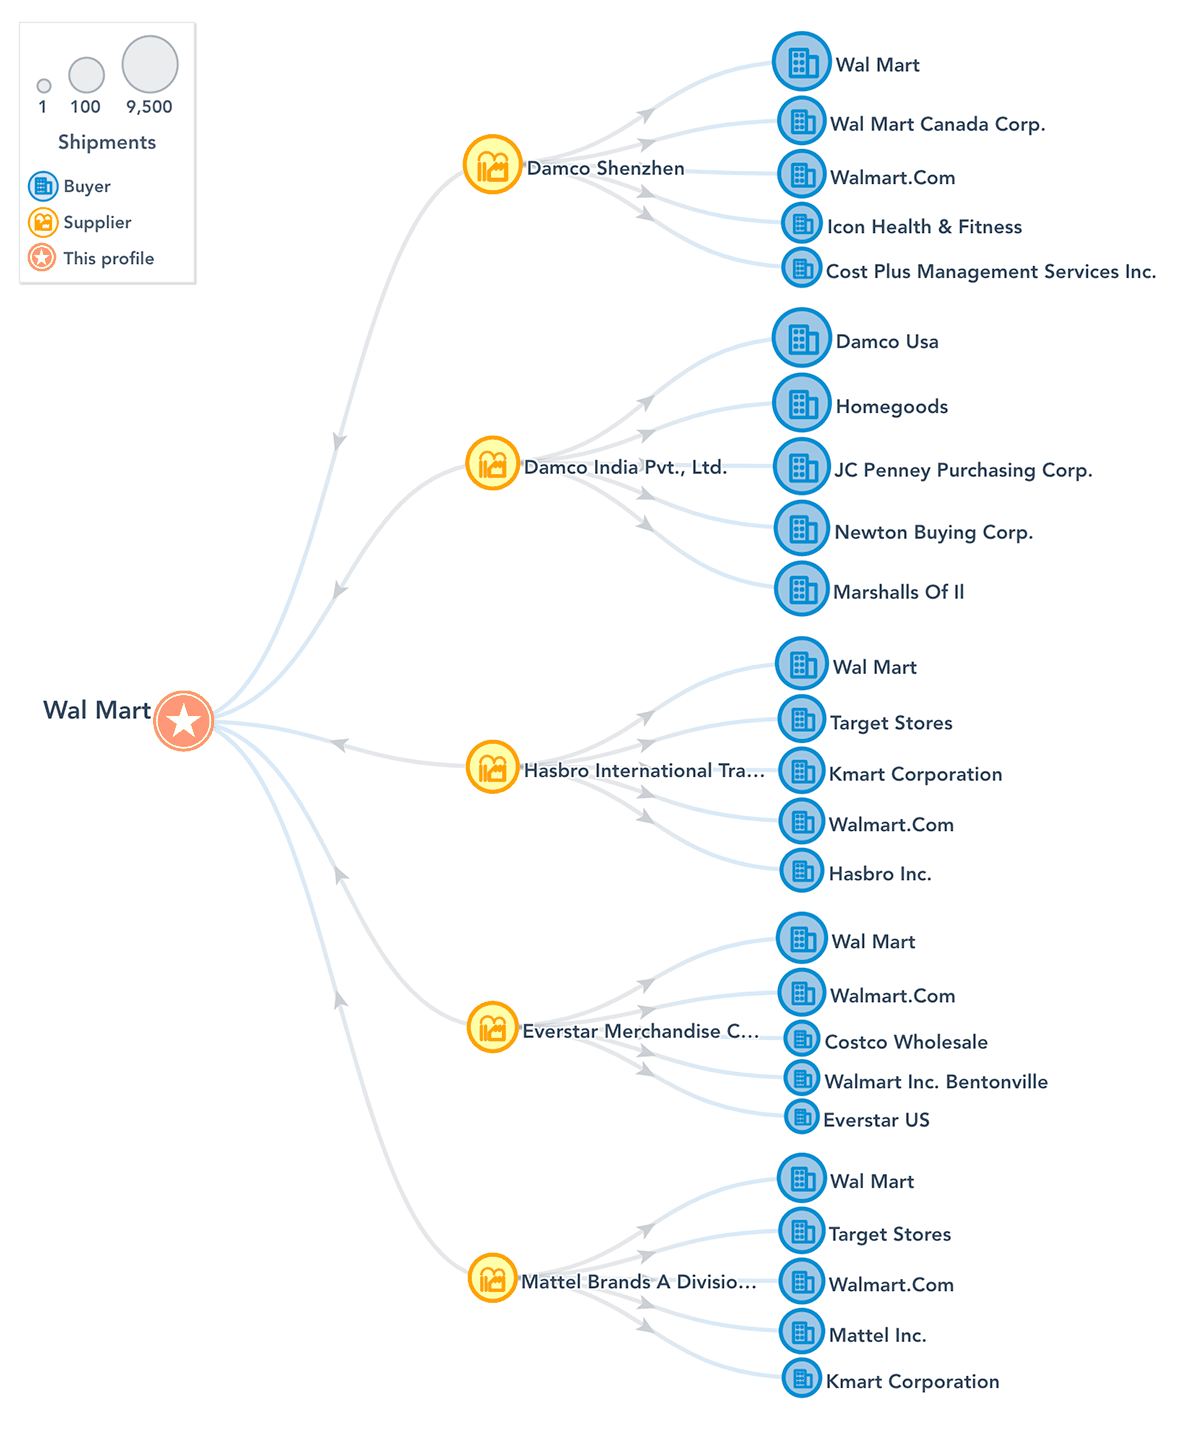 Network View Diagram